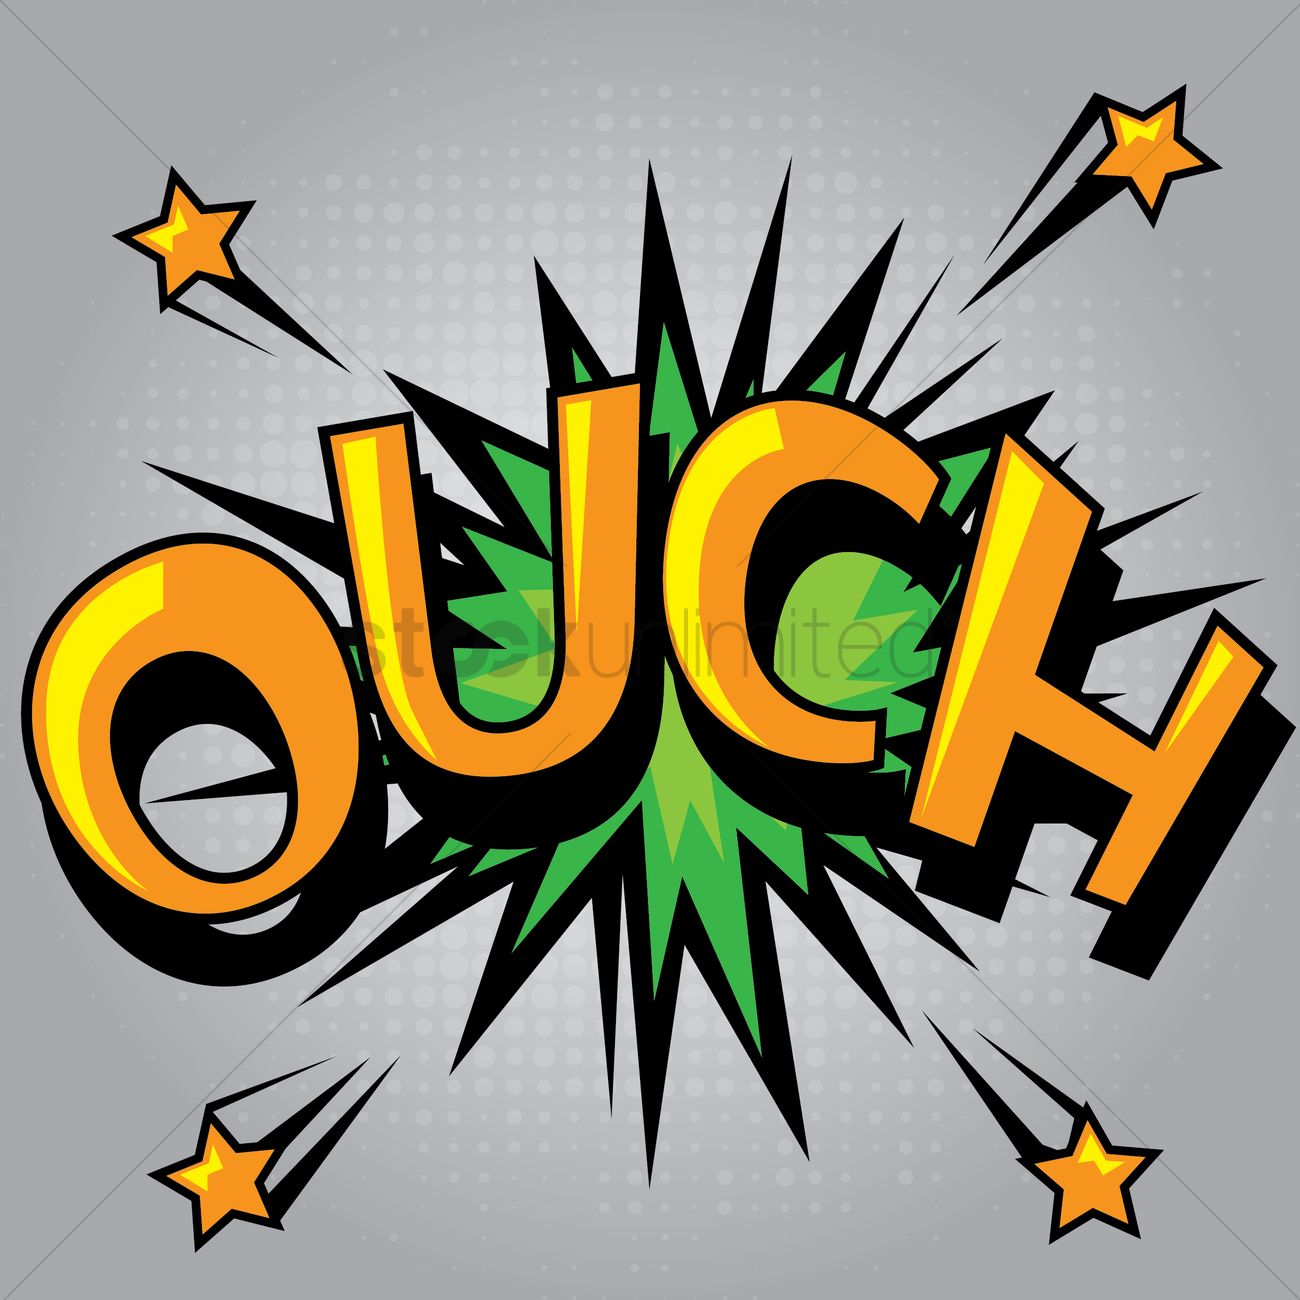 Comic effect ouch Vector Image - 1606838 | StockUnlimited